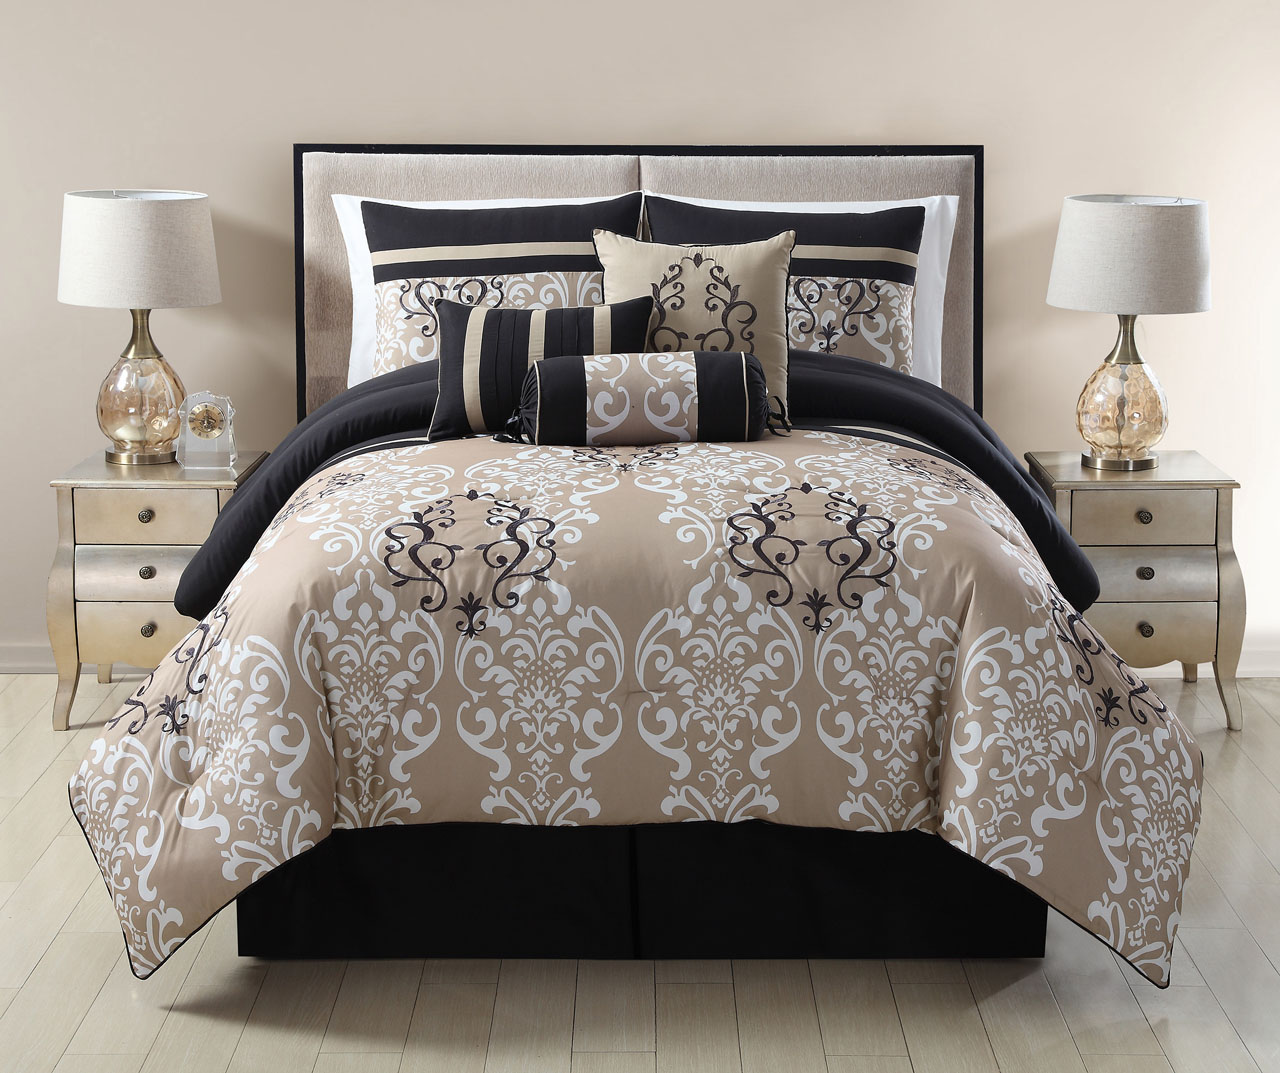 comforter lodge sets taupe brown walmart queen ecrins very simple